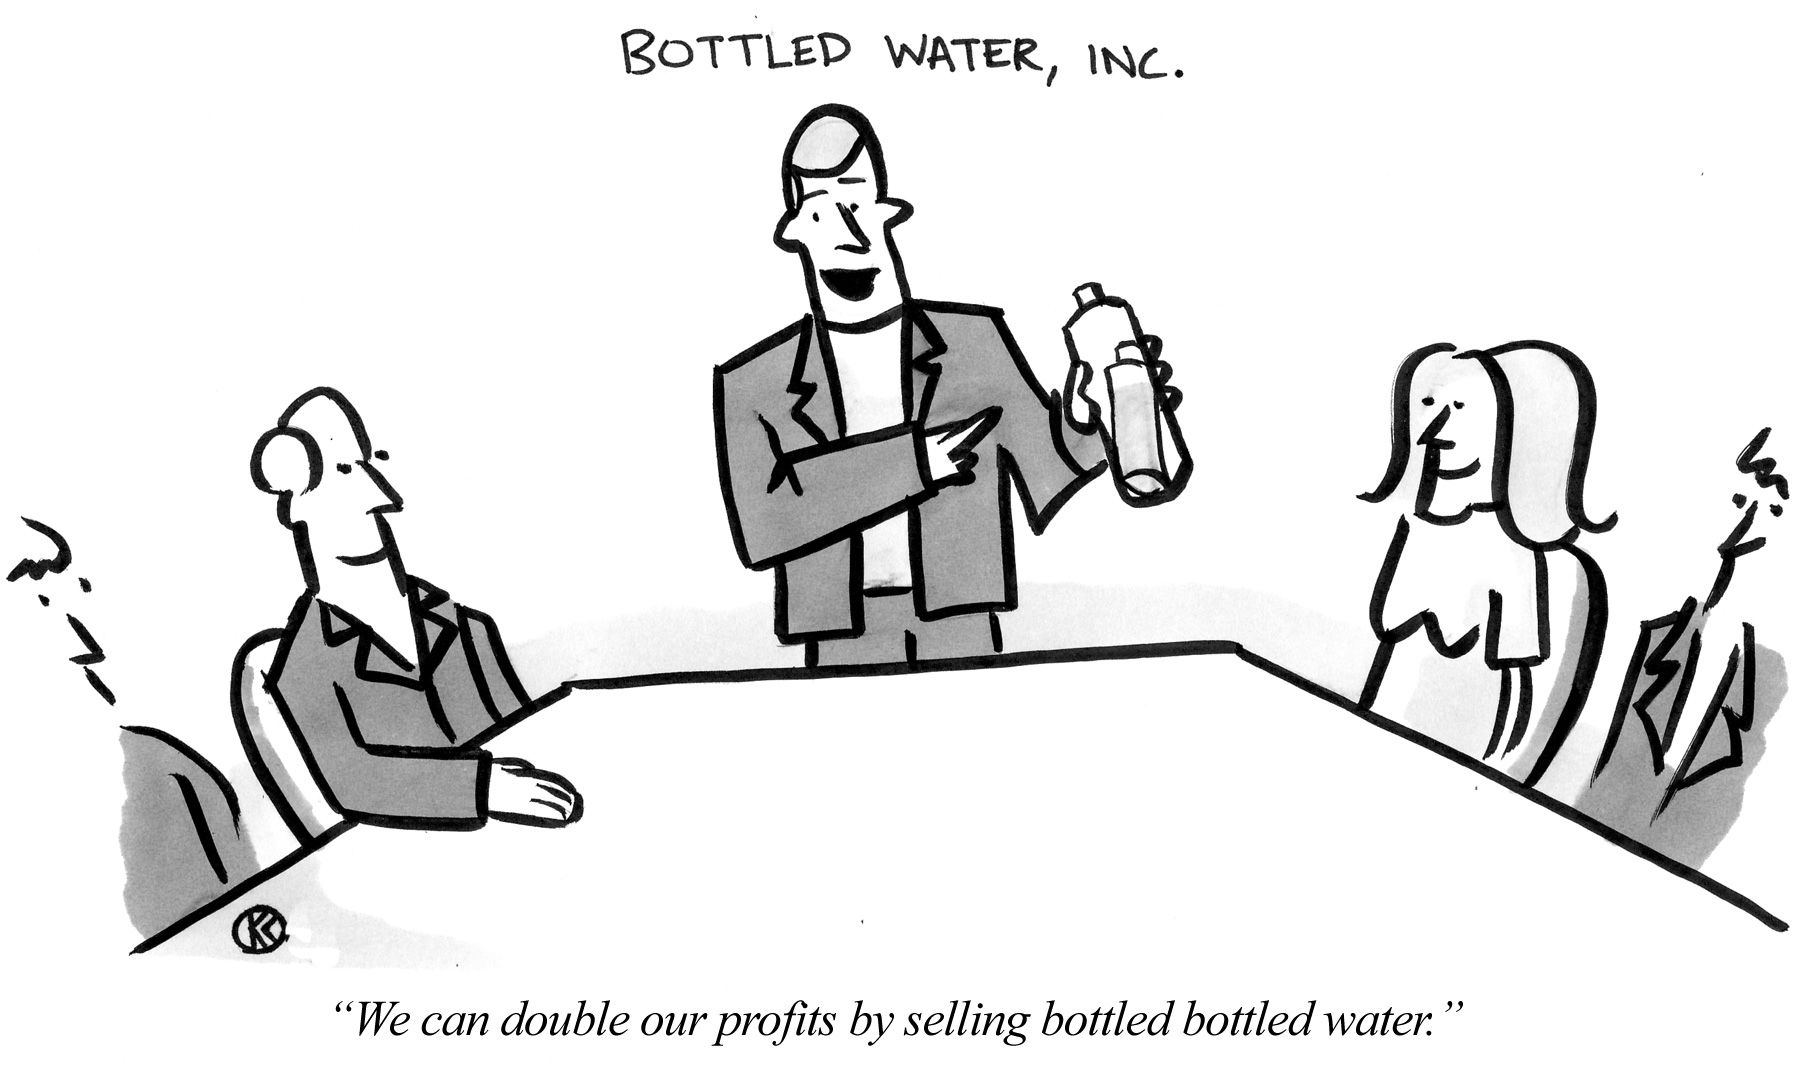 We can double our profits by selling bottled bottled water.